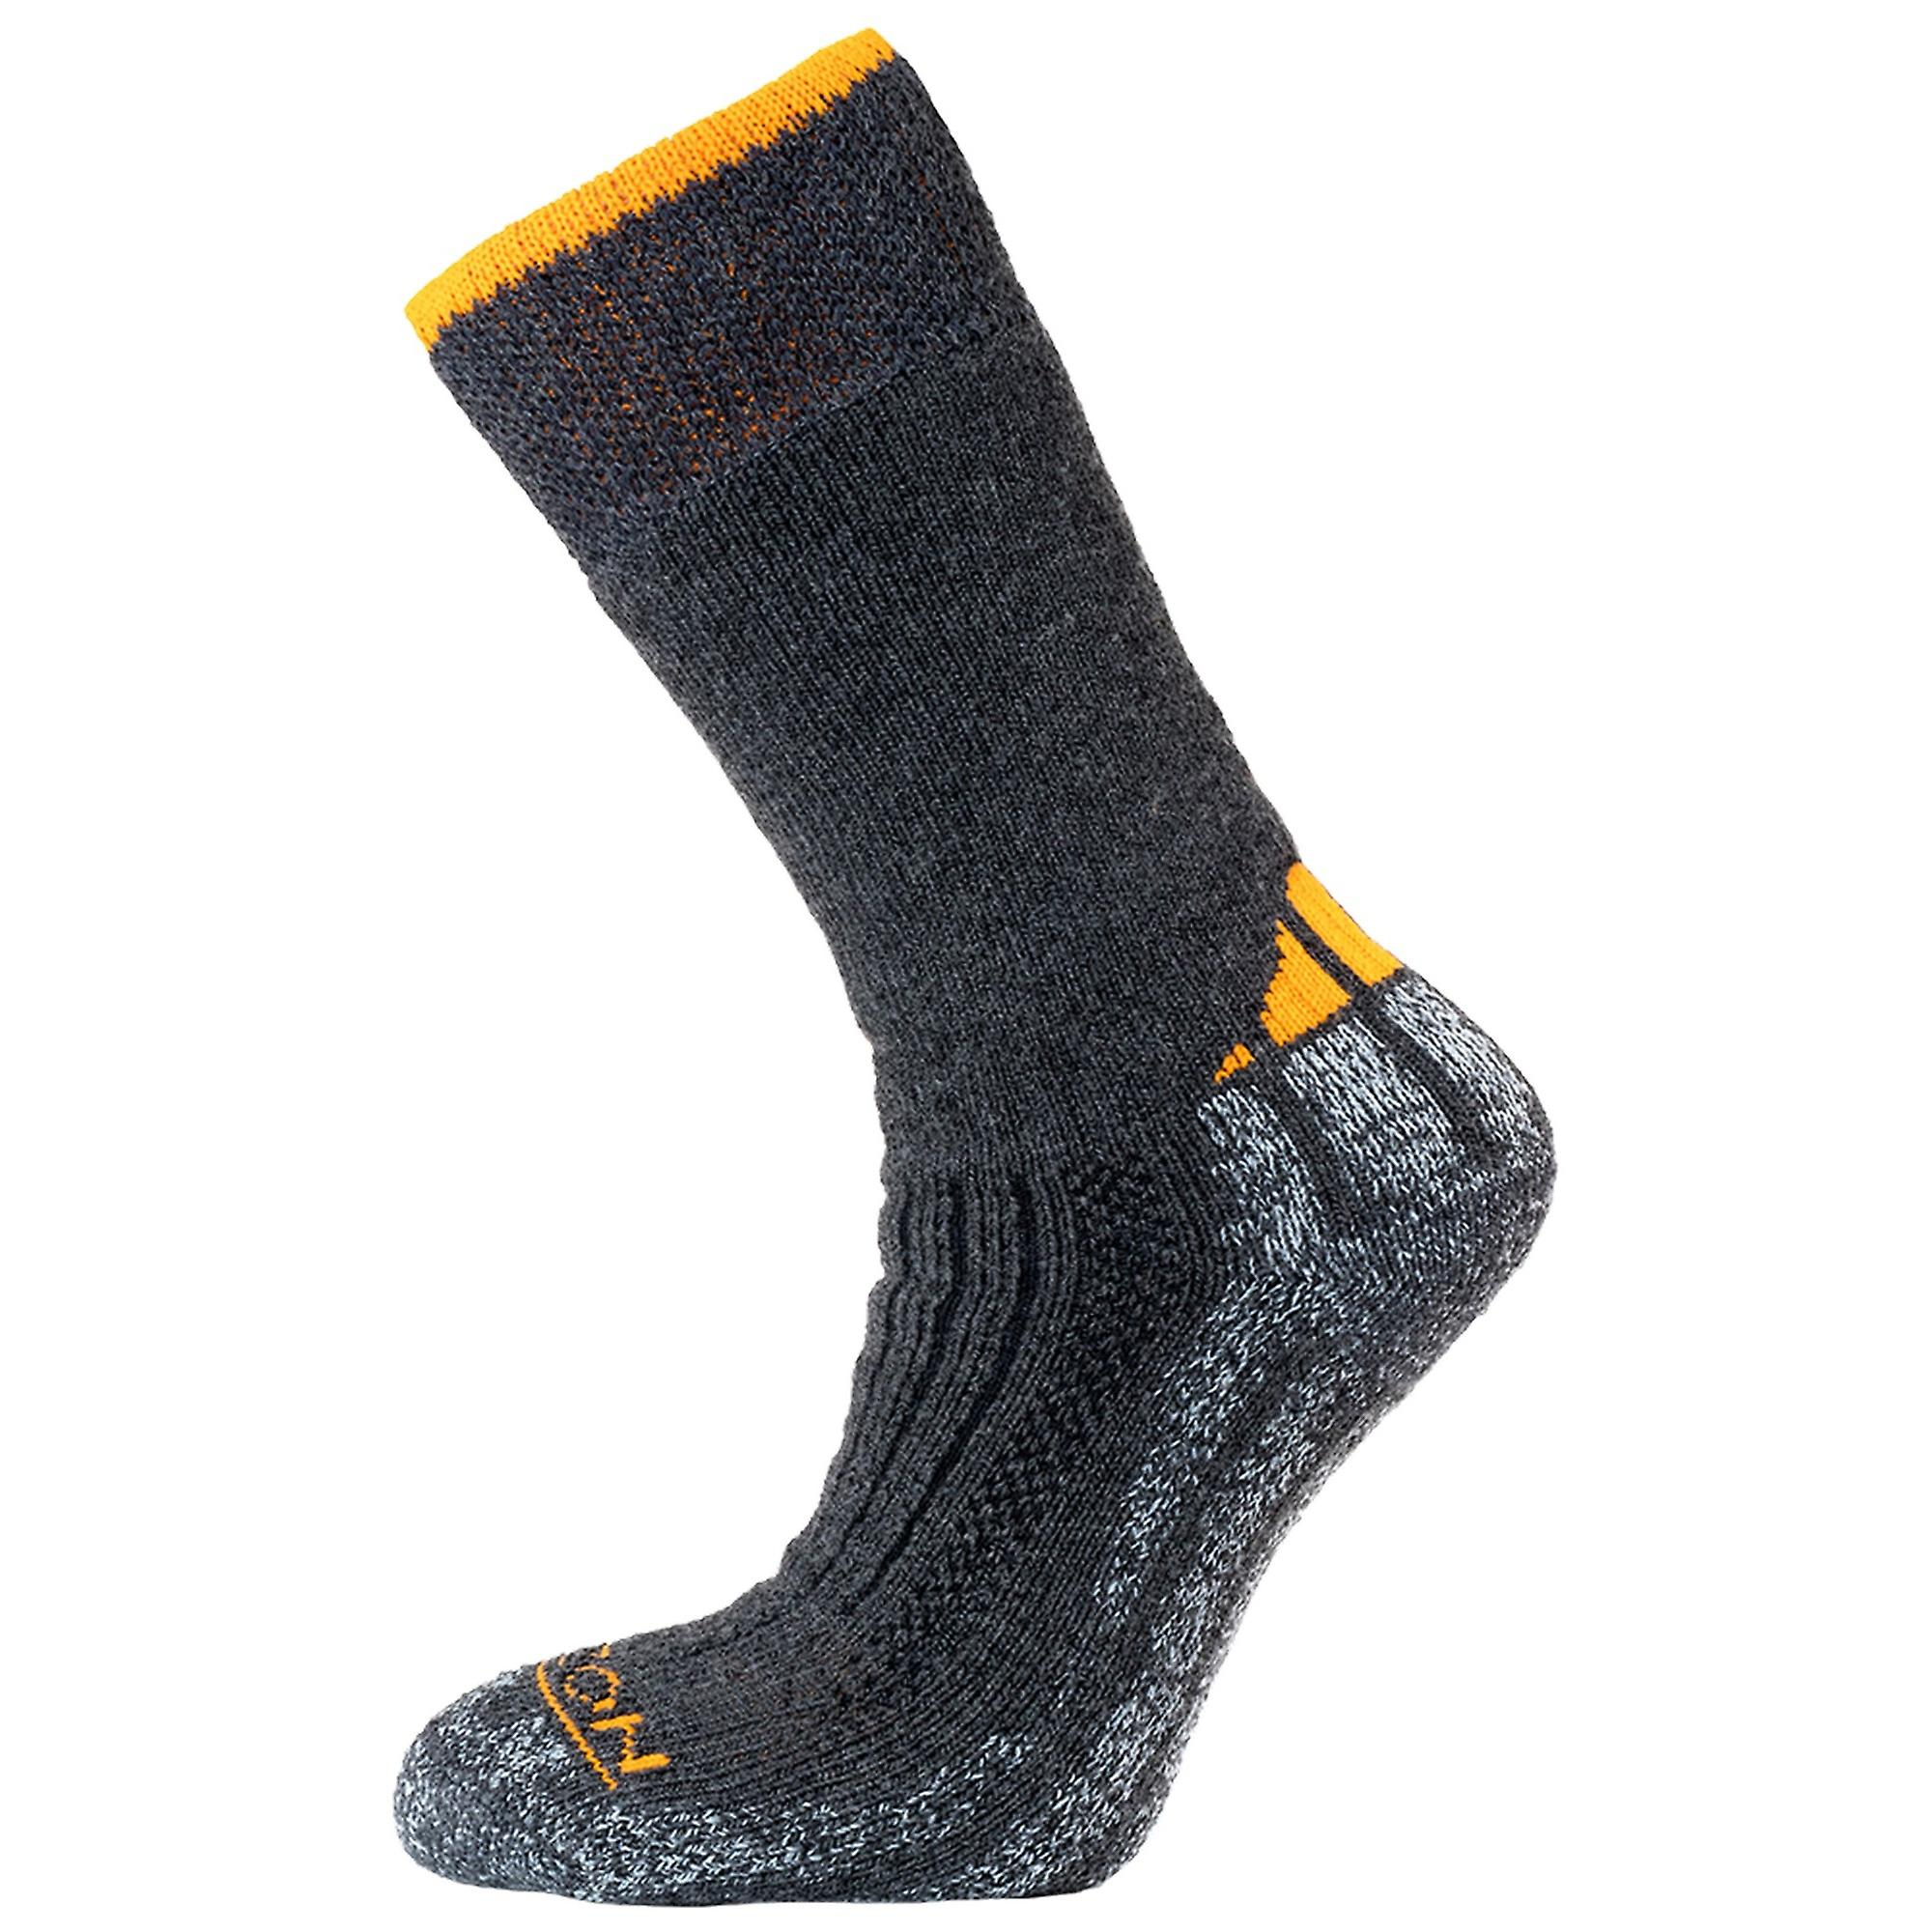 Performance Unisex Expedition Ventilated Socks